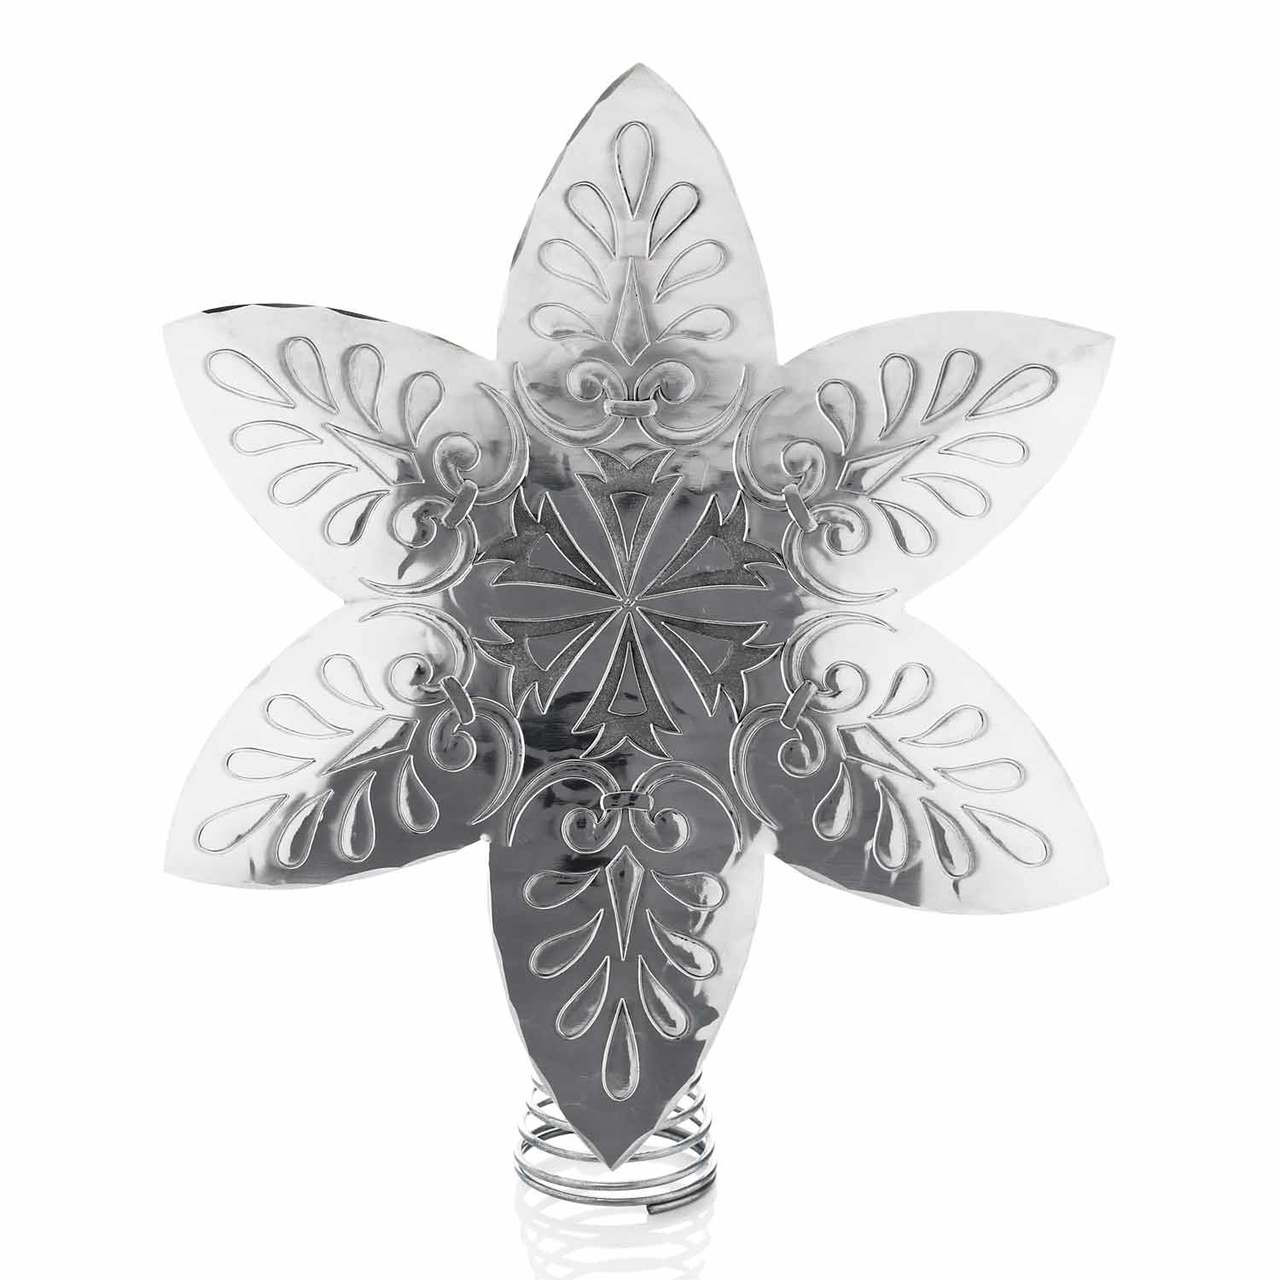 Make Your Holiday Traditions Truly Special with Aluminum Handmade Tree Toppers